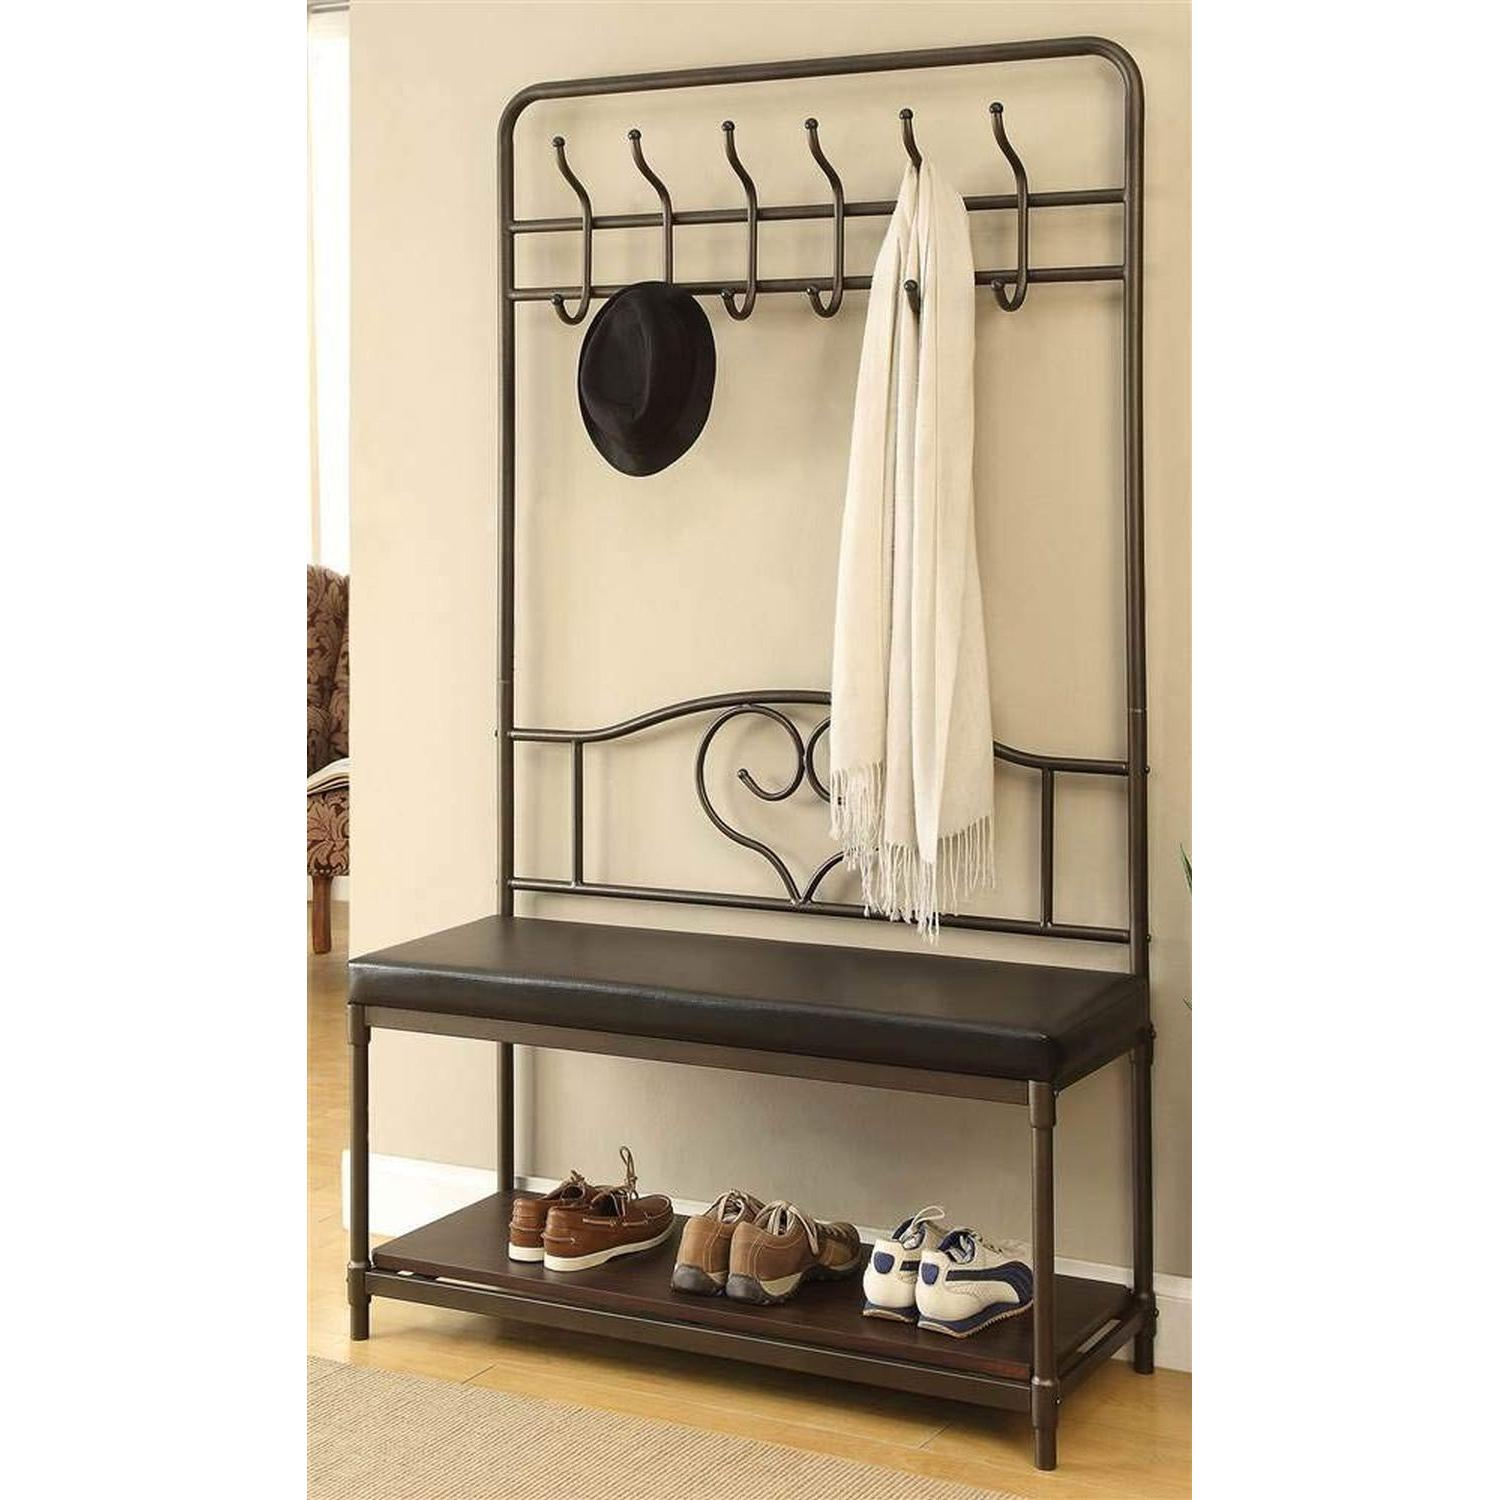 Hall Tree w/ Garment Racks, Storage Shelf & Cushioned Seat - image-2